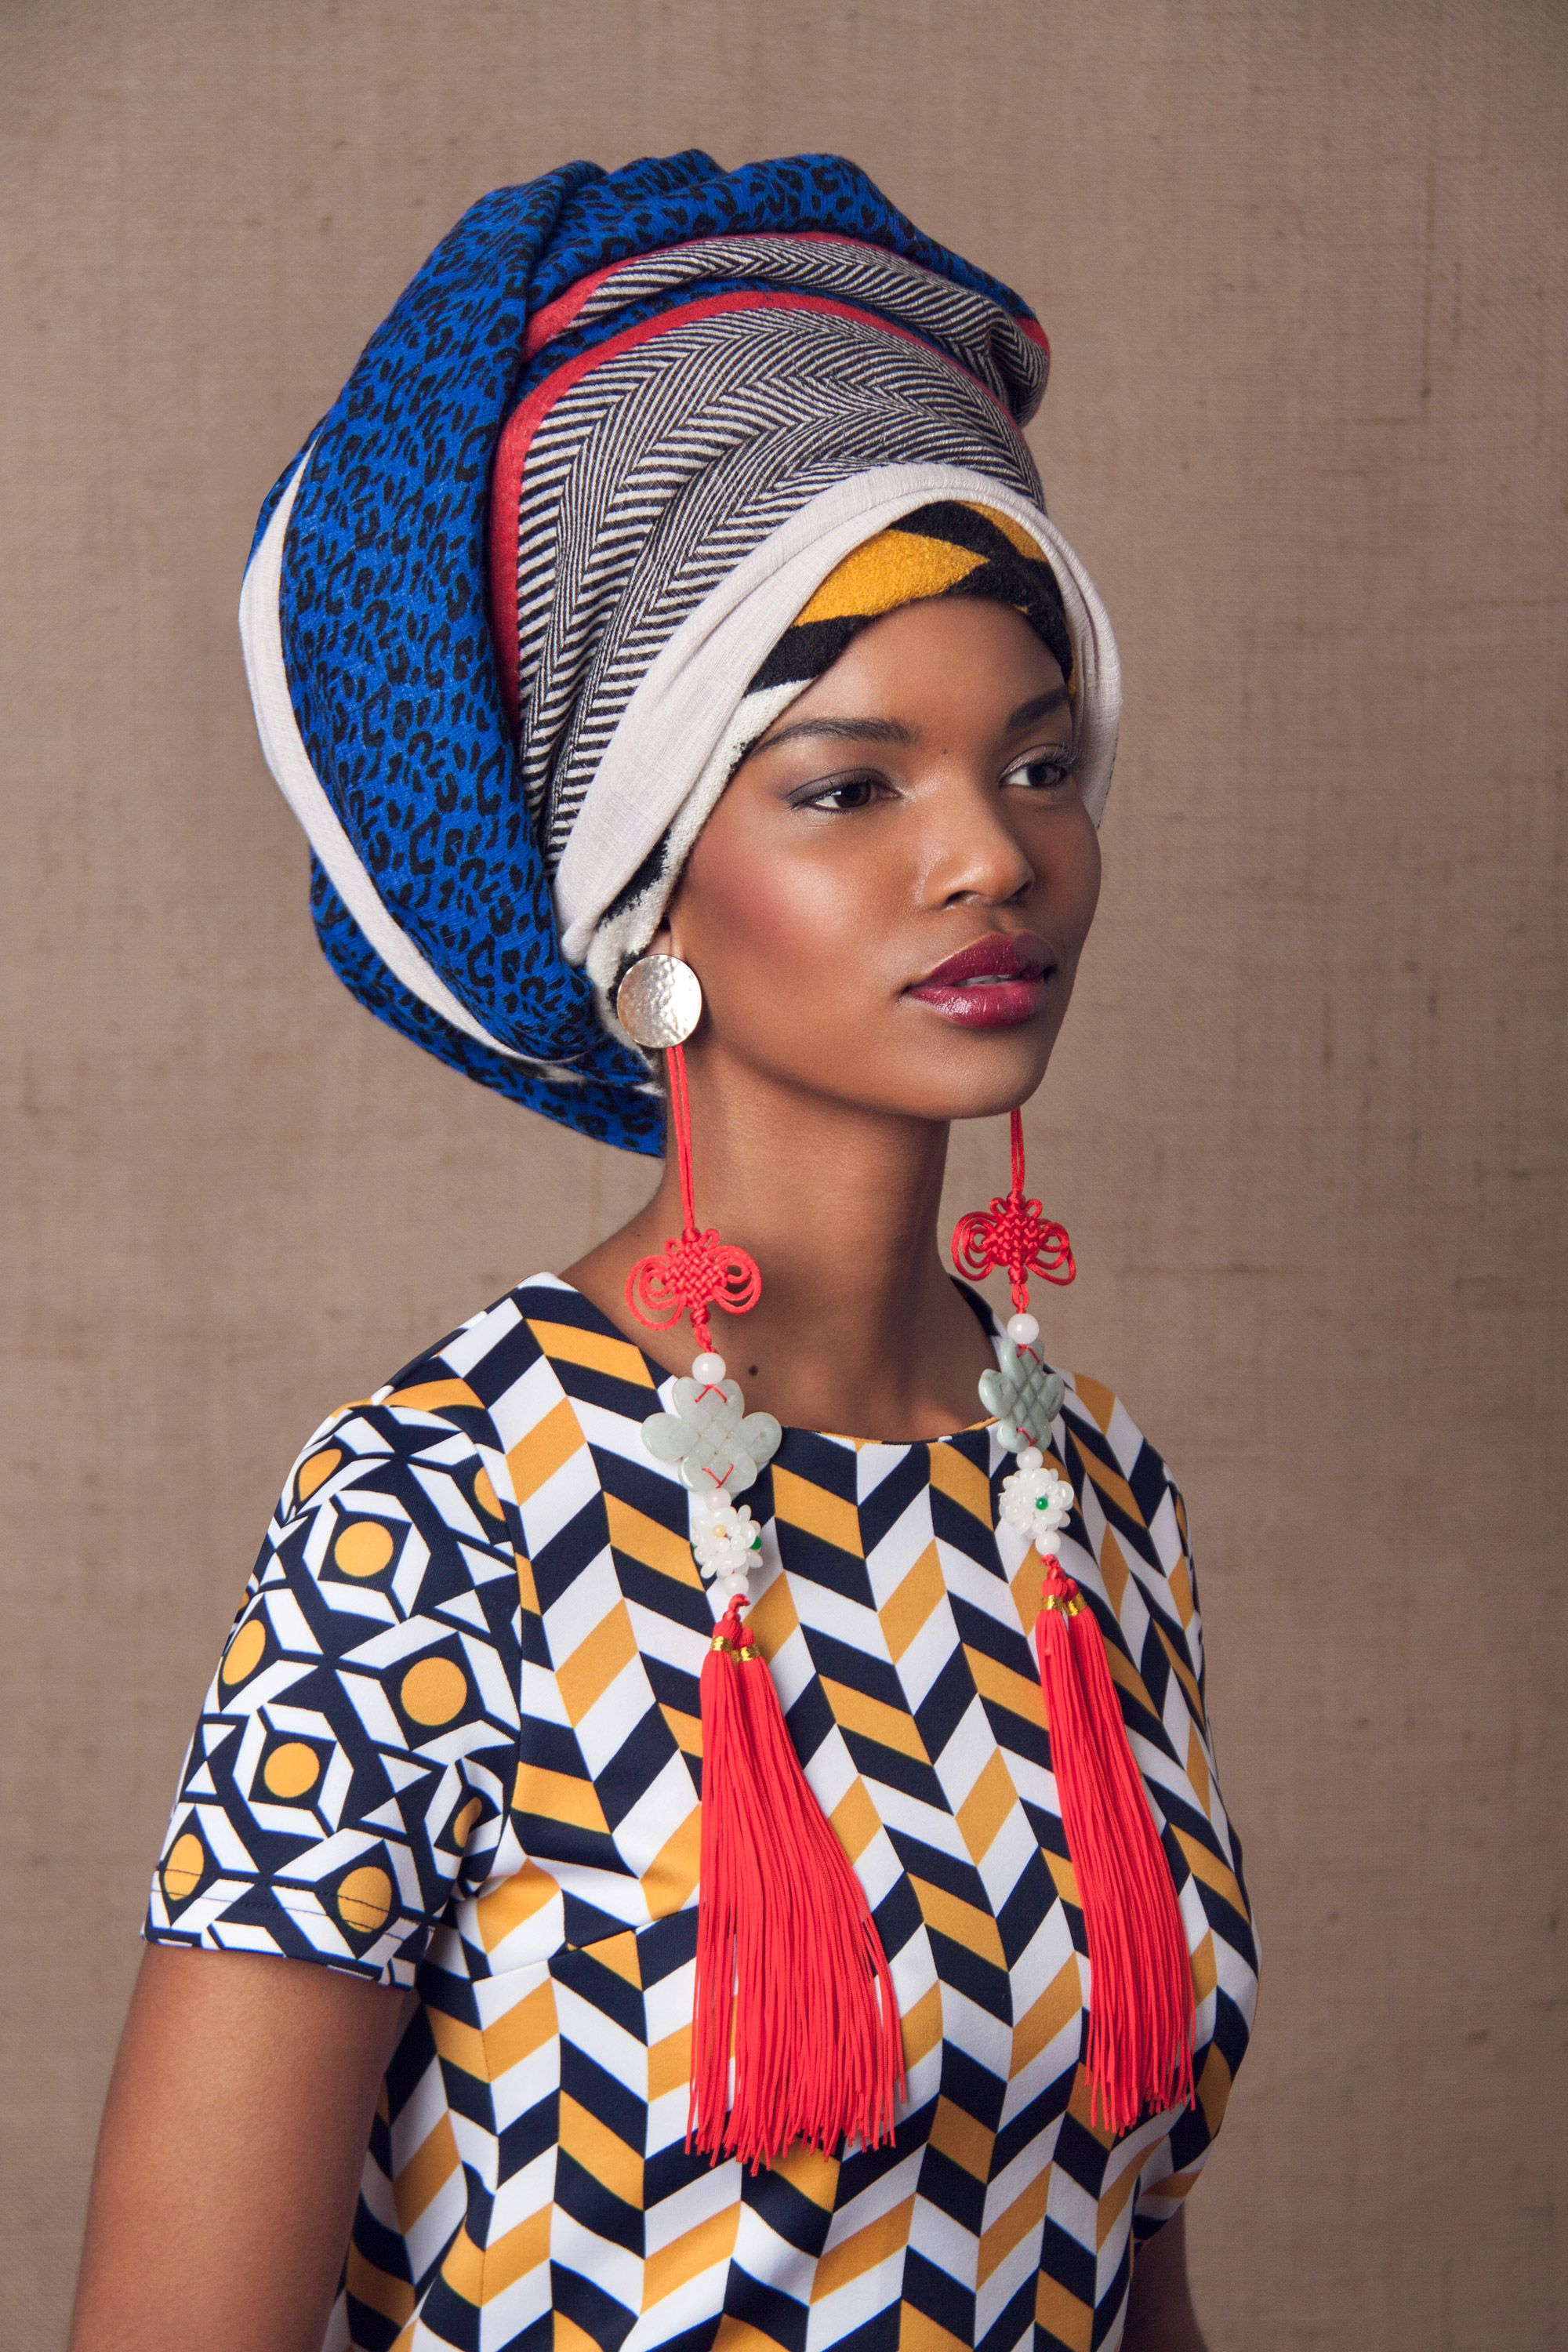 Striking s of Cultural Fashions You Have to See